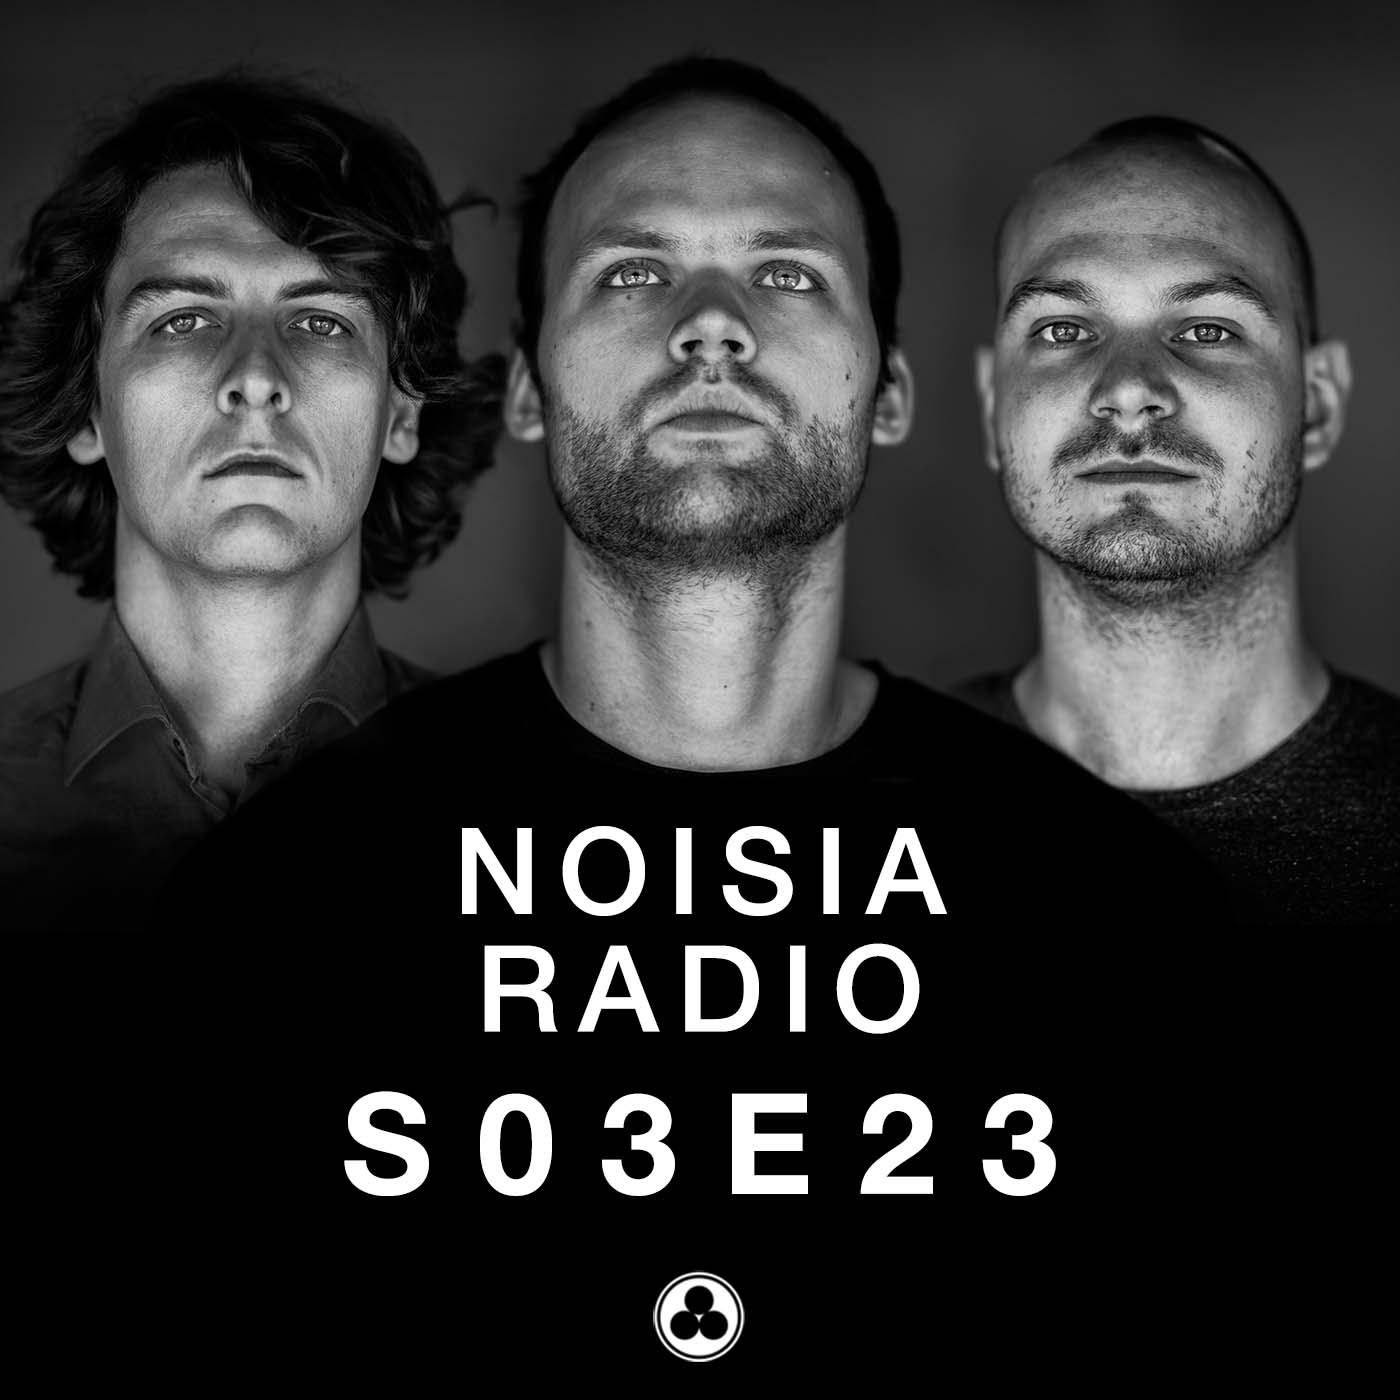 Noisia Radio S03E23